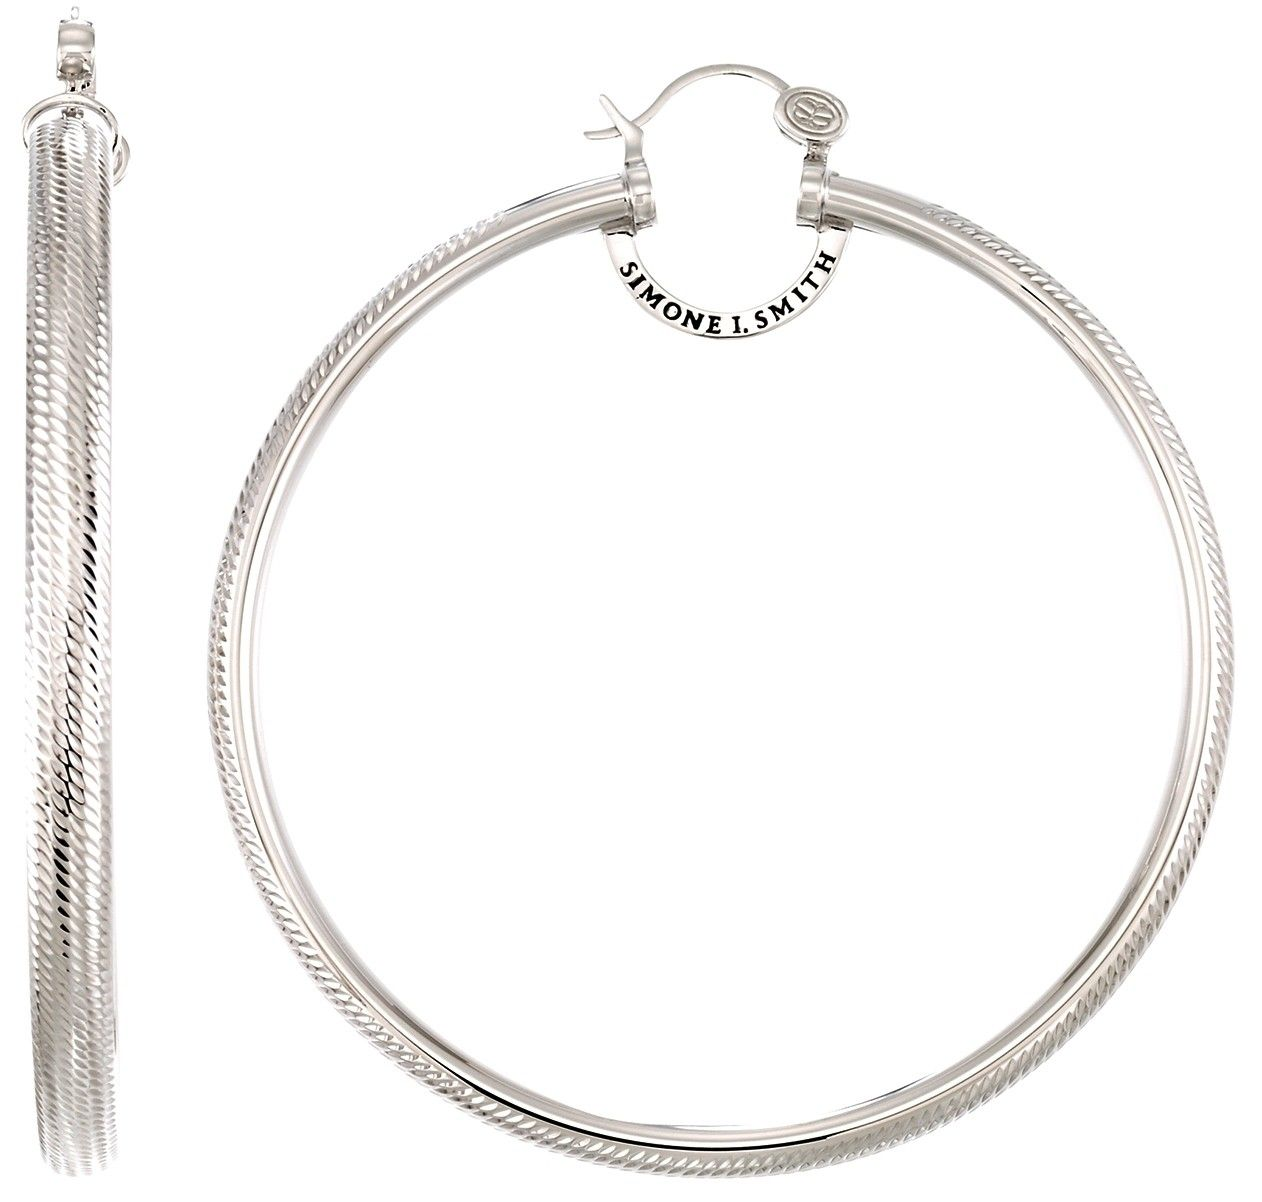 Brilliance xl hoopsplatinum over sterling silver diamond cut x